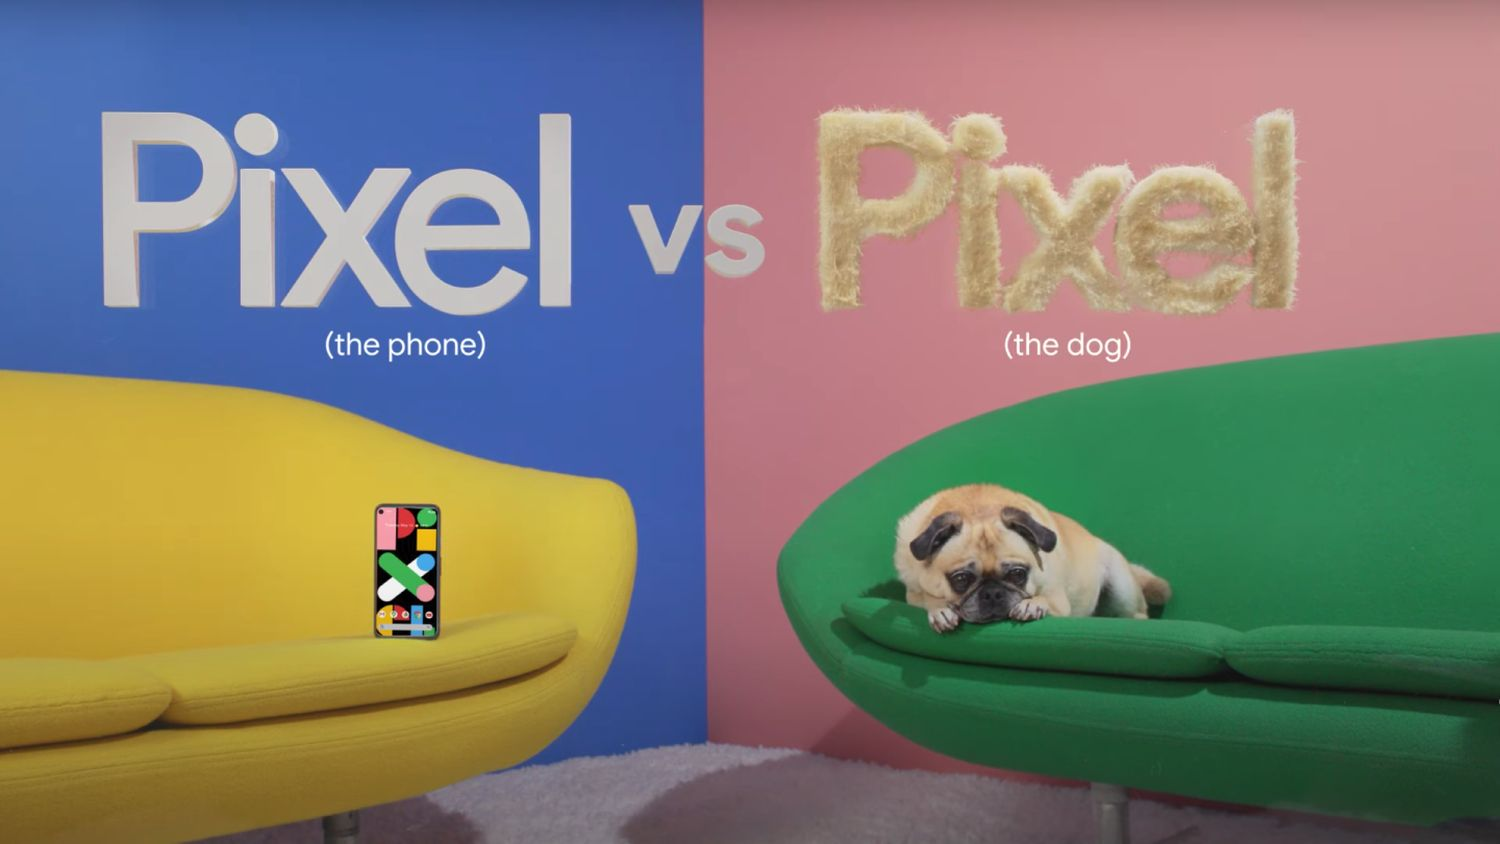 pixel the phone vs pixel the dog